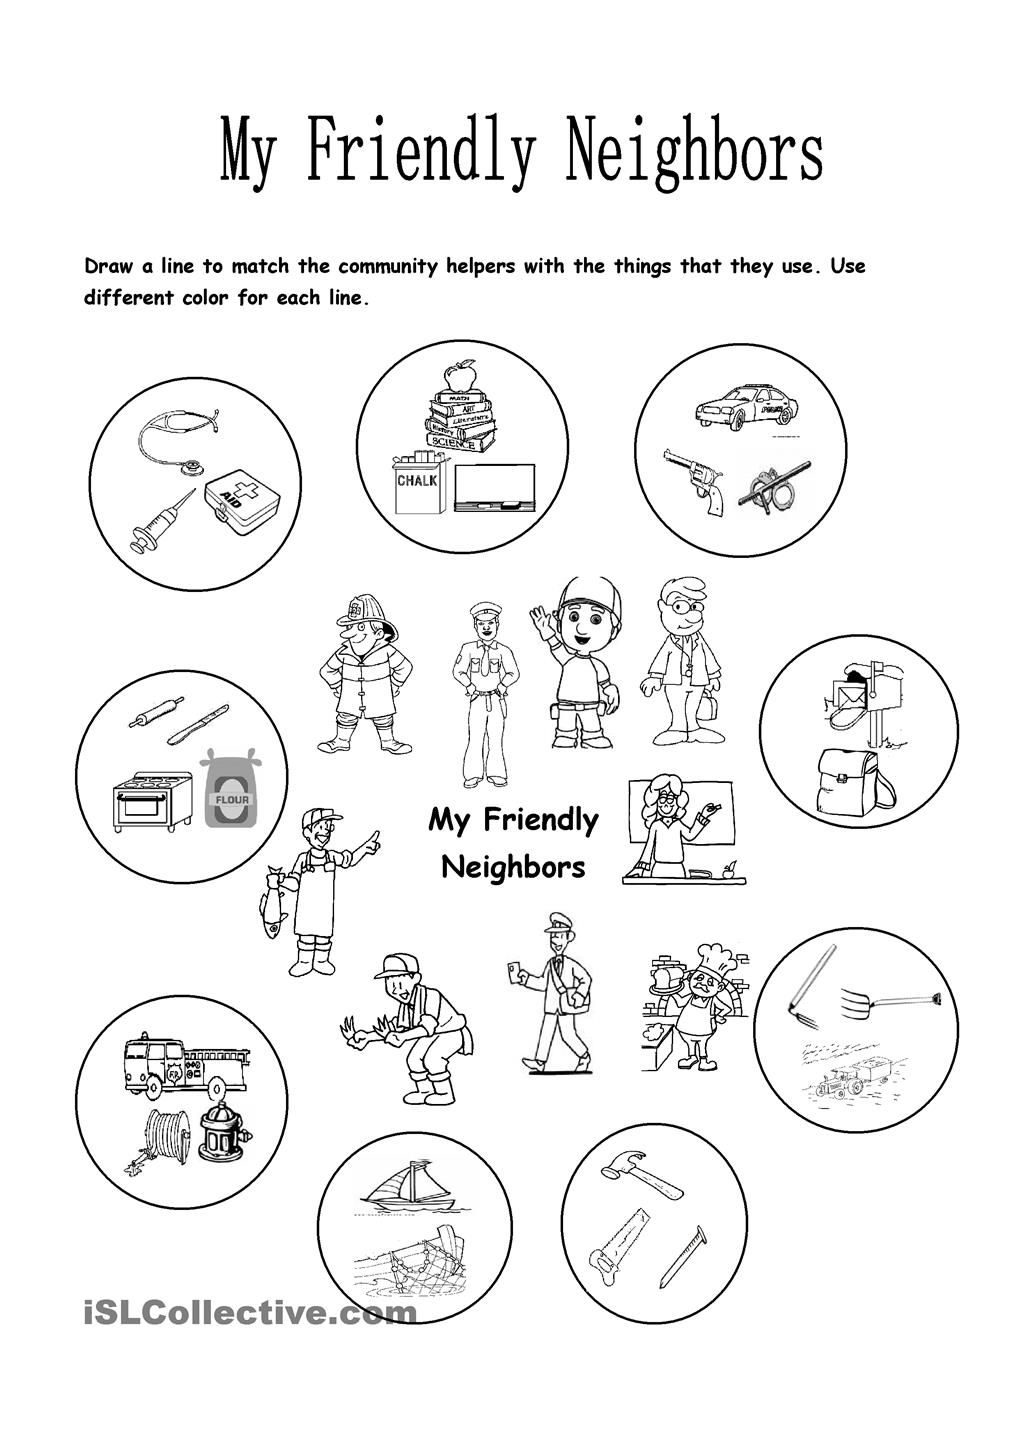 Worksheets Free Community Helpers Worksheets my friendly neighbors community pinterest explore helpers the and more